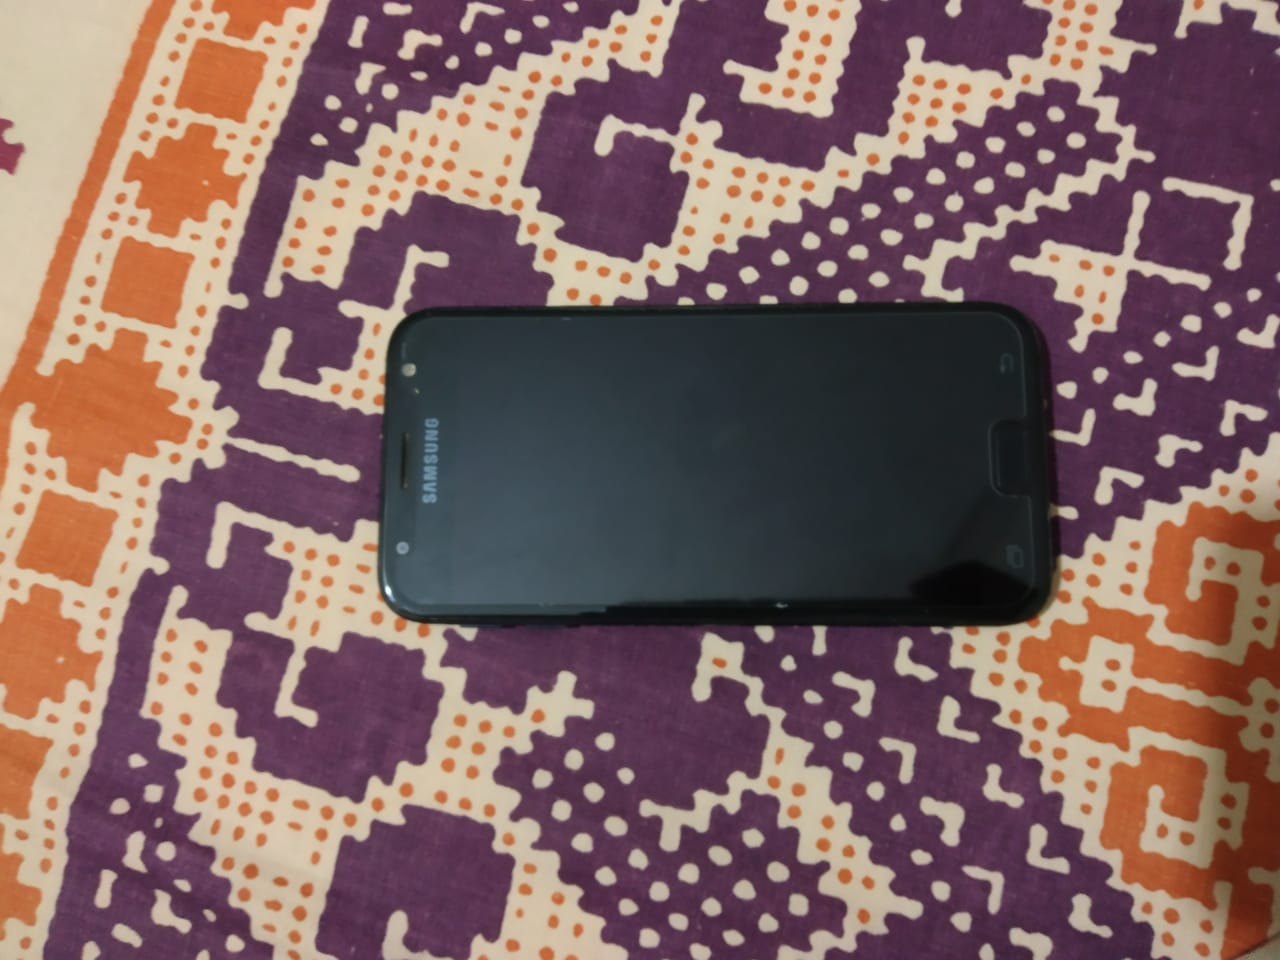 Excellent phone in low budget - photo 3